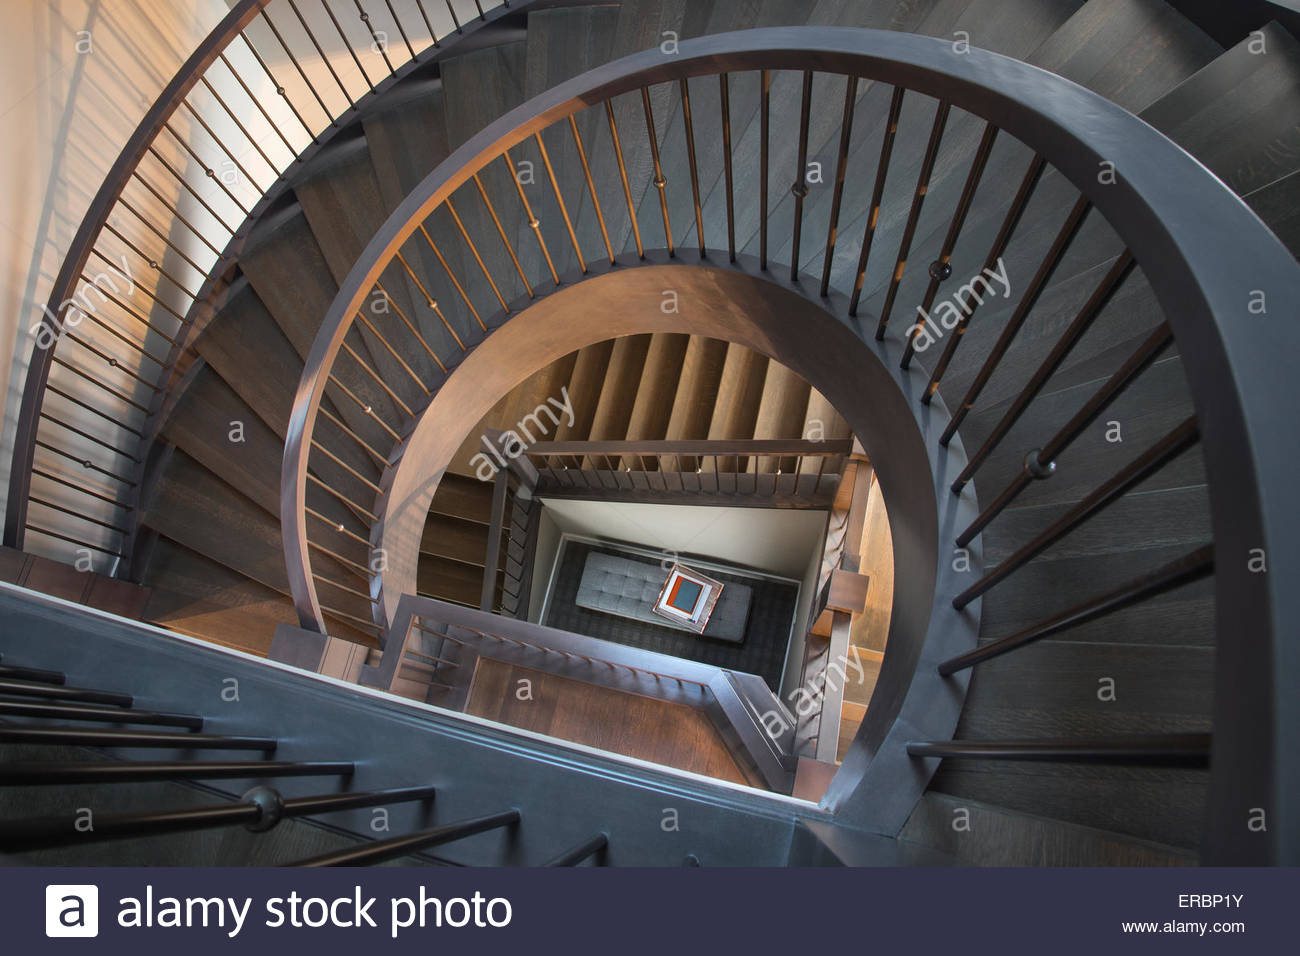 View From Above Of Spiraling Staircase Stock Photo 83237335 Alamy